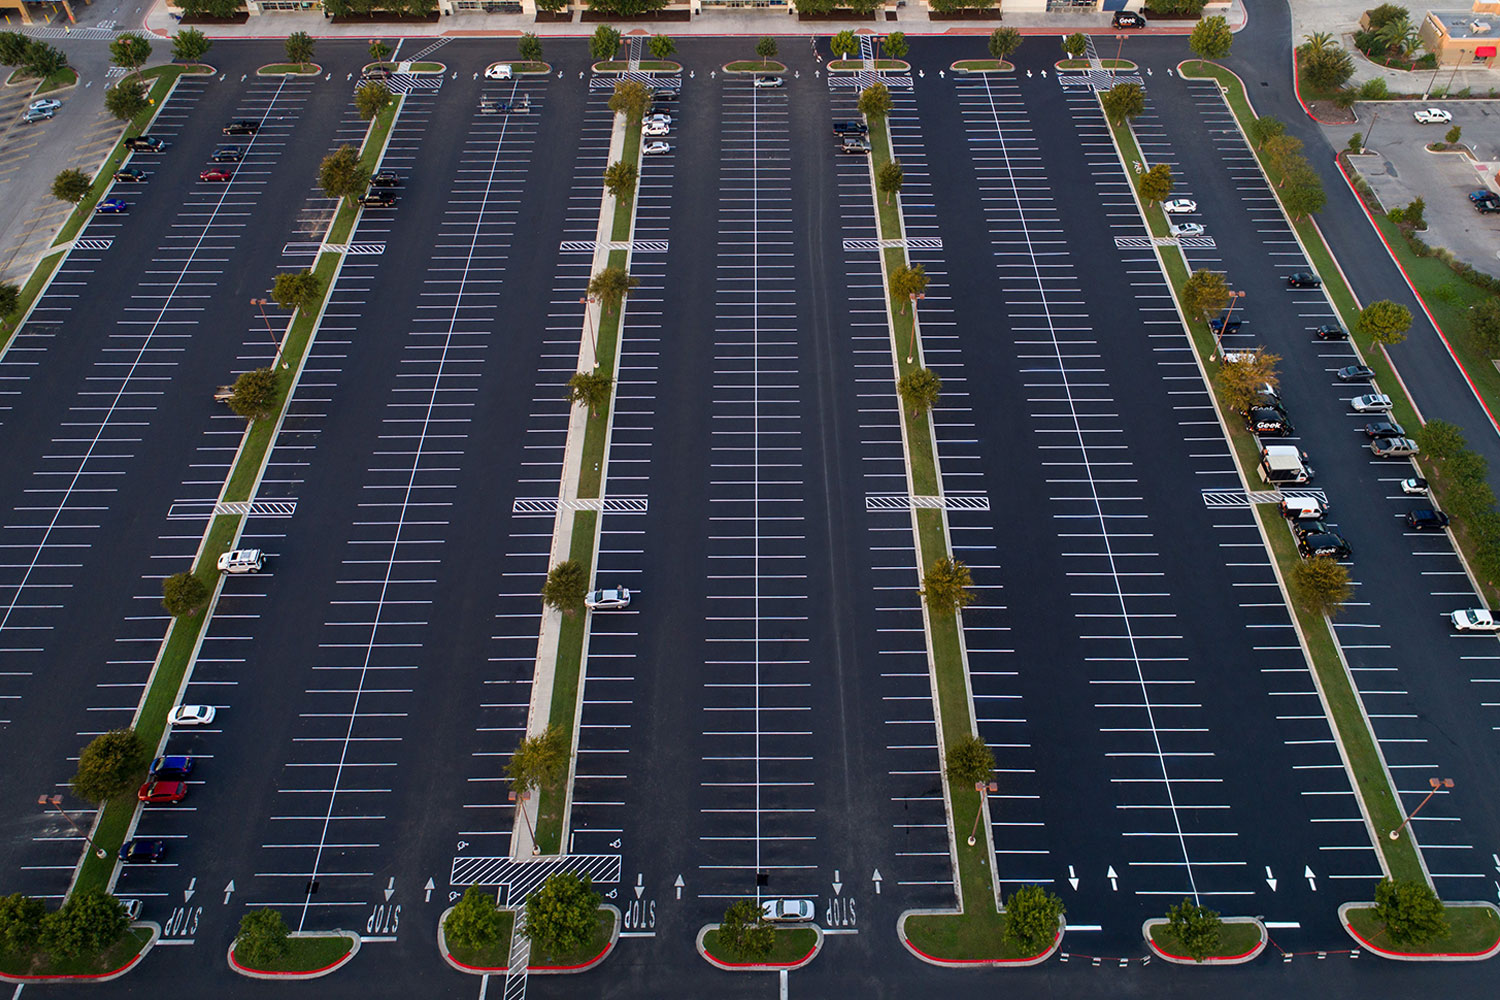 aerial parking lot maintenance and striping example